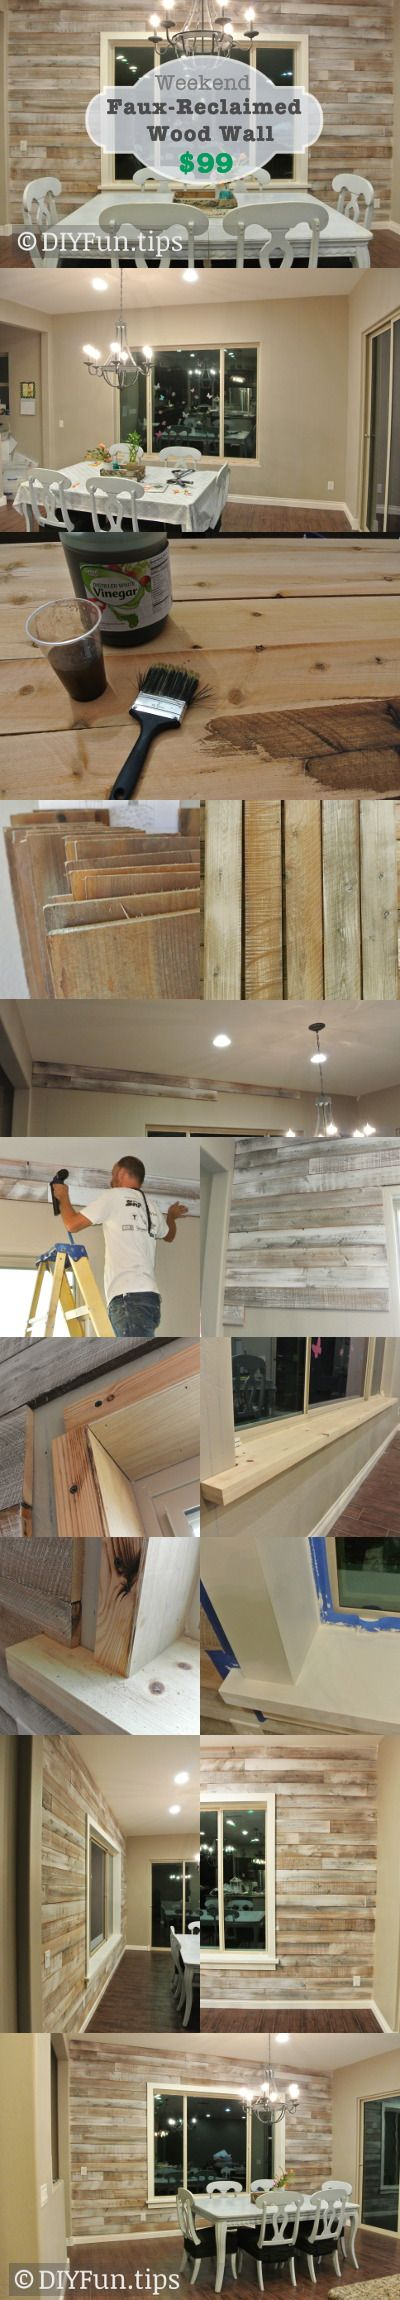 DIY Faux-Reclaimed Wood Wall. Put up a